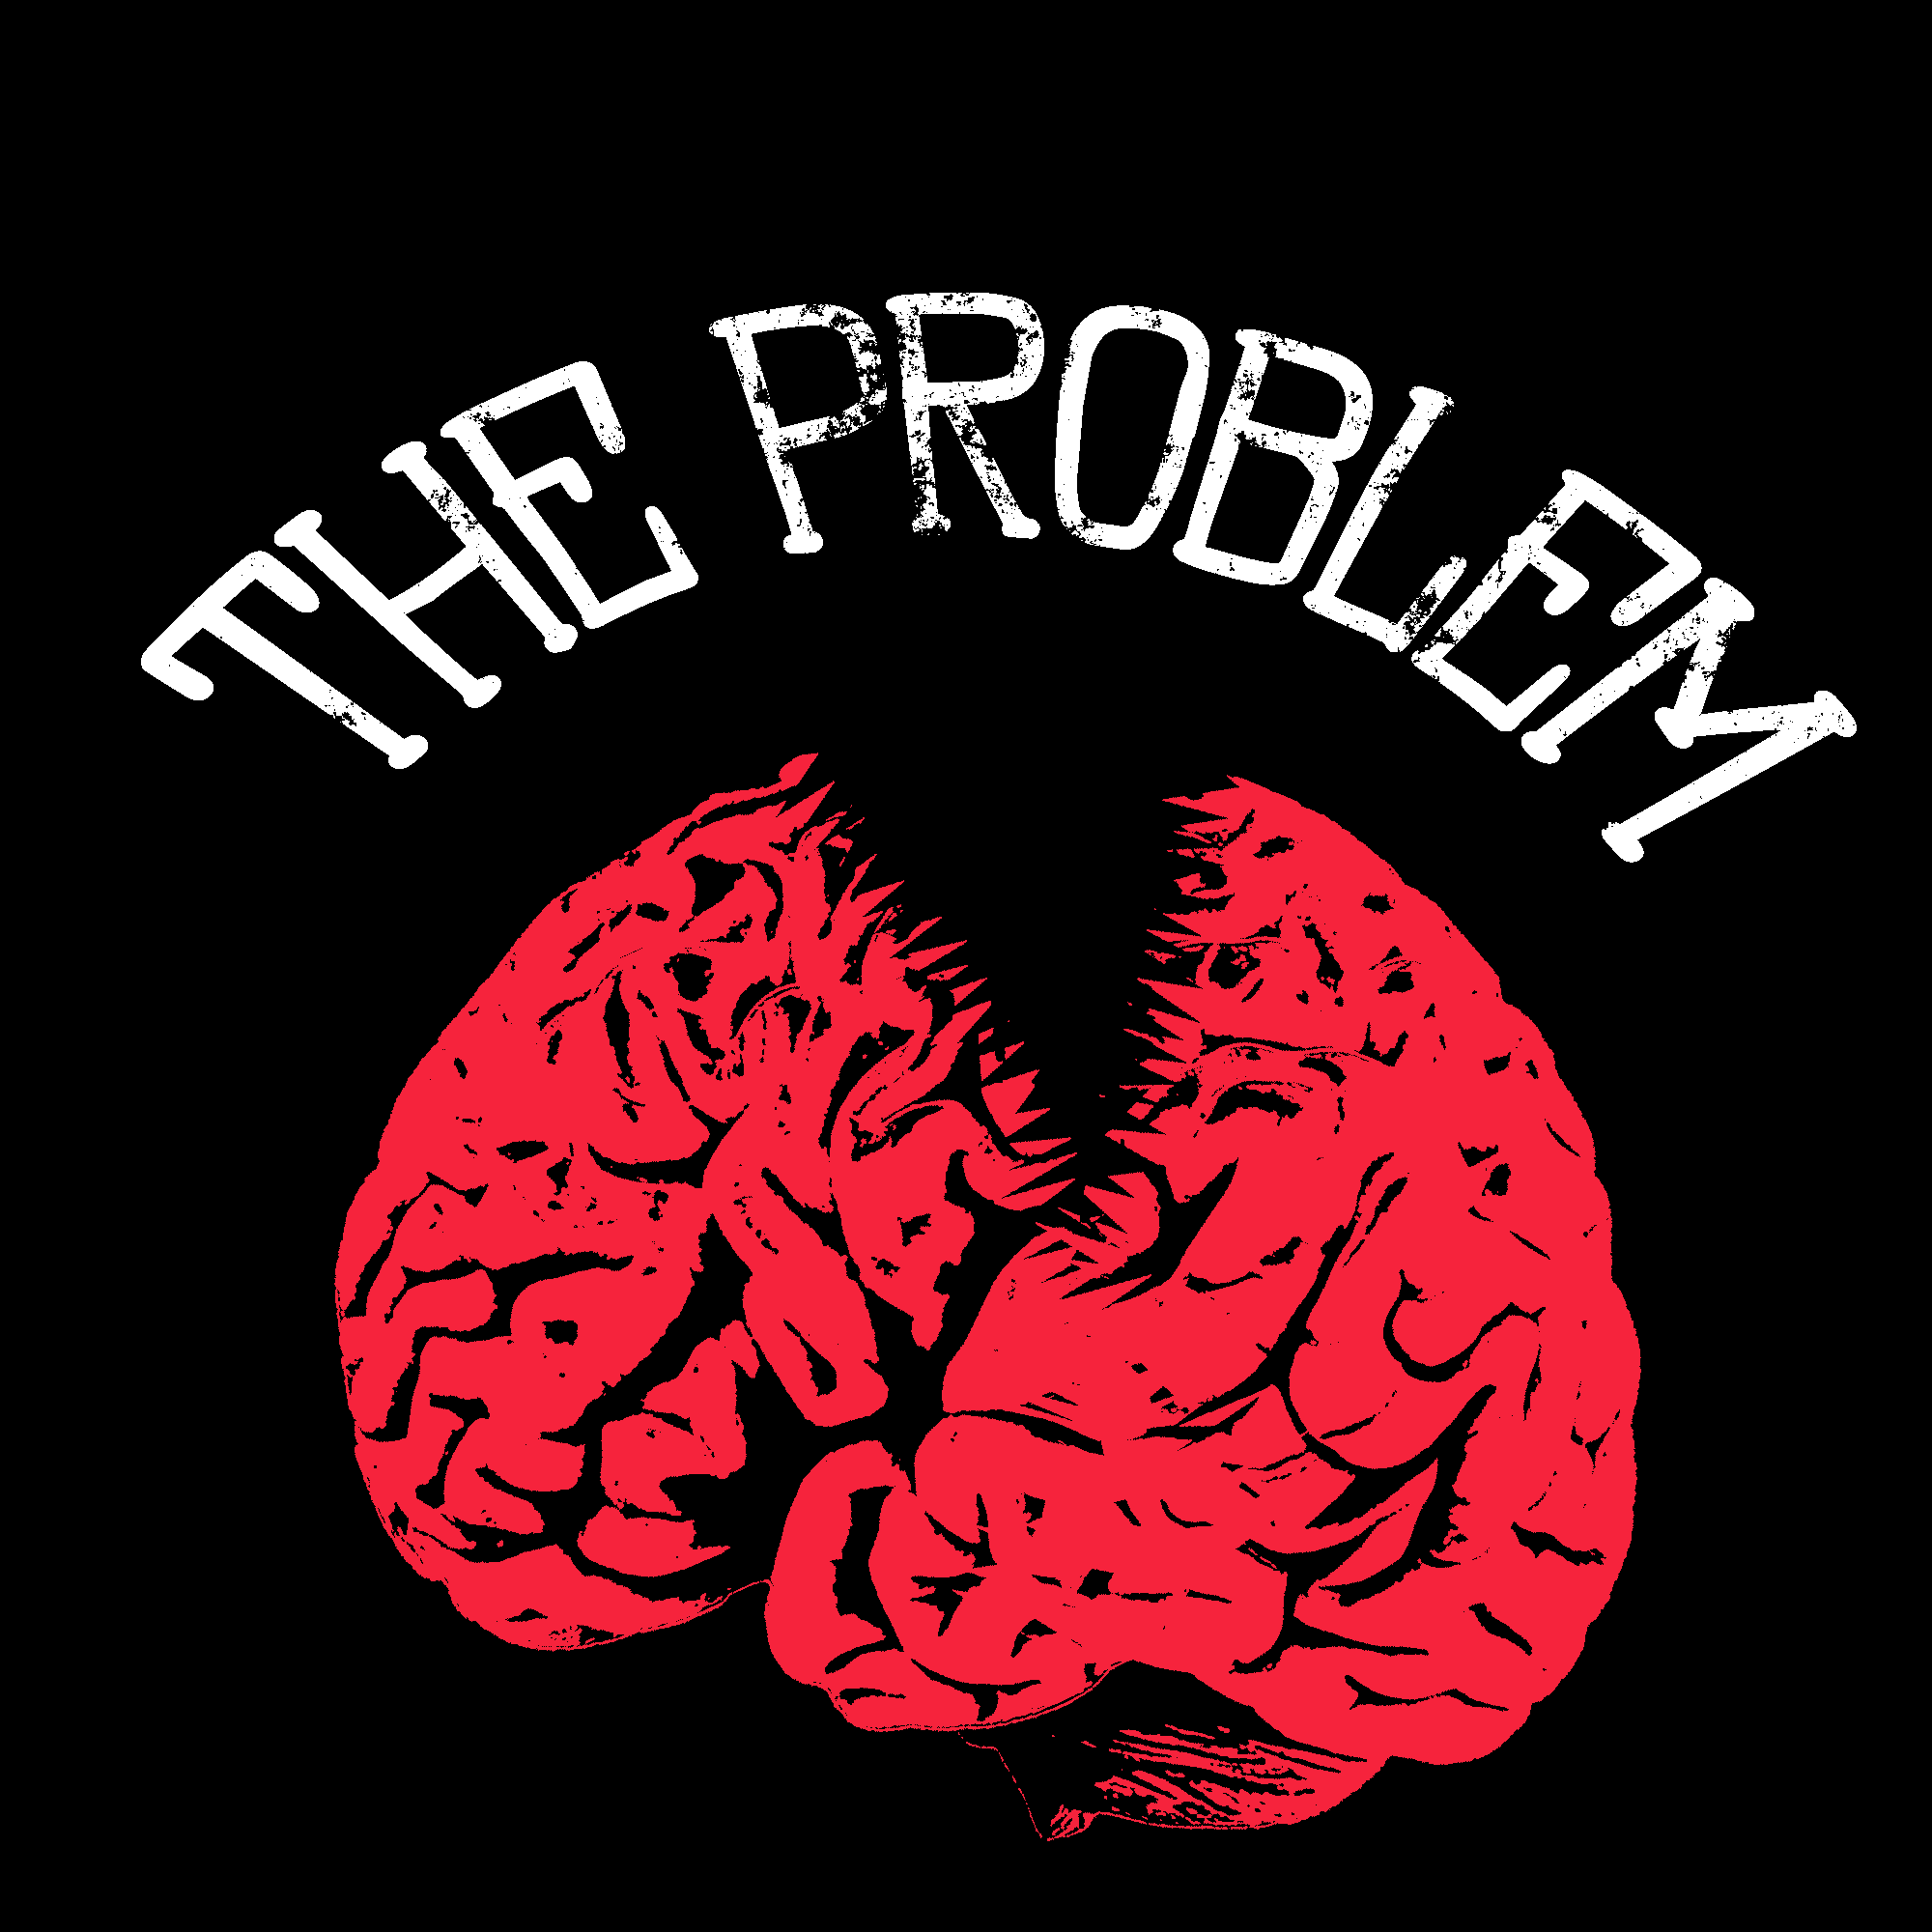 The Problem official band logo